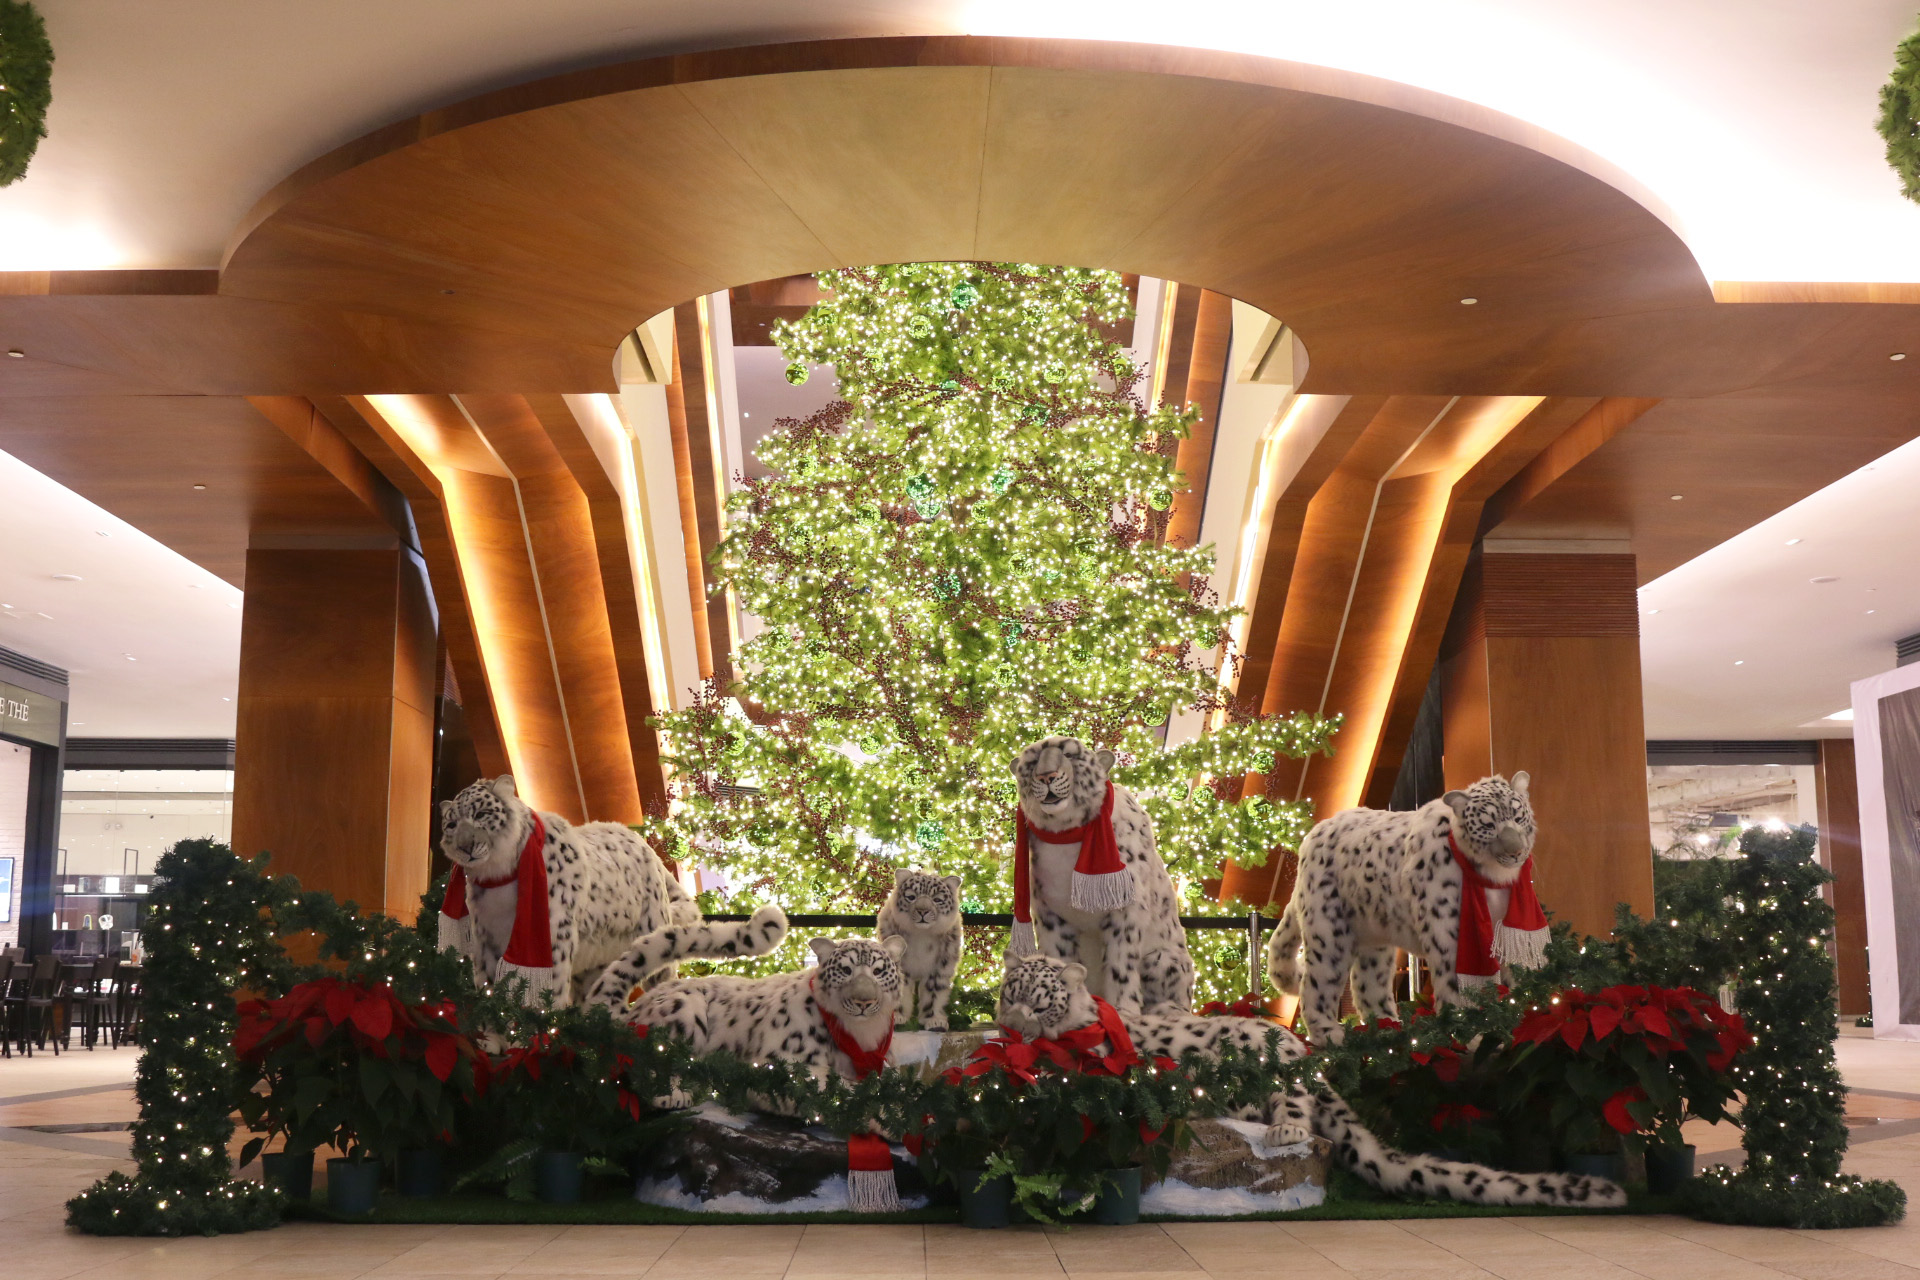 Nothing shines brighter than Christmas at Rockwell!